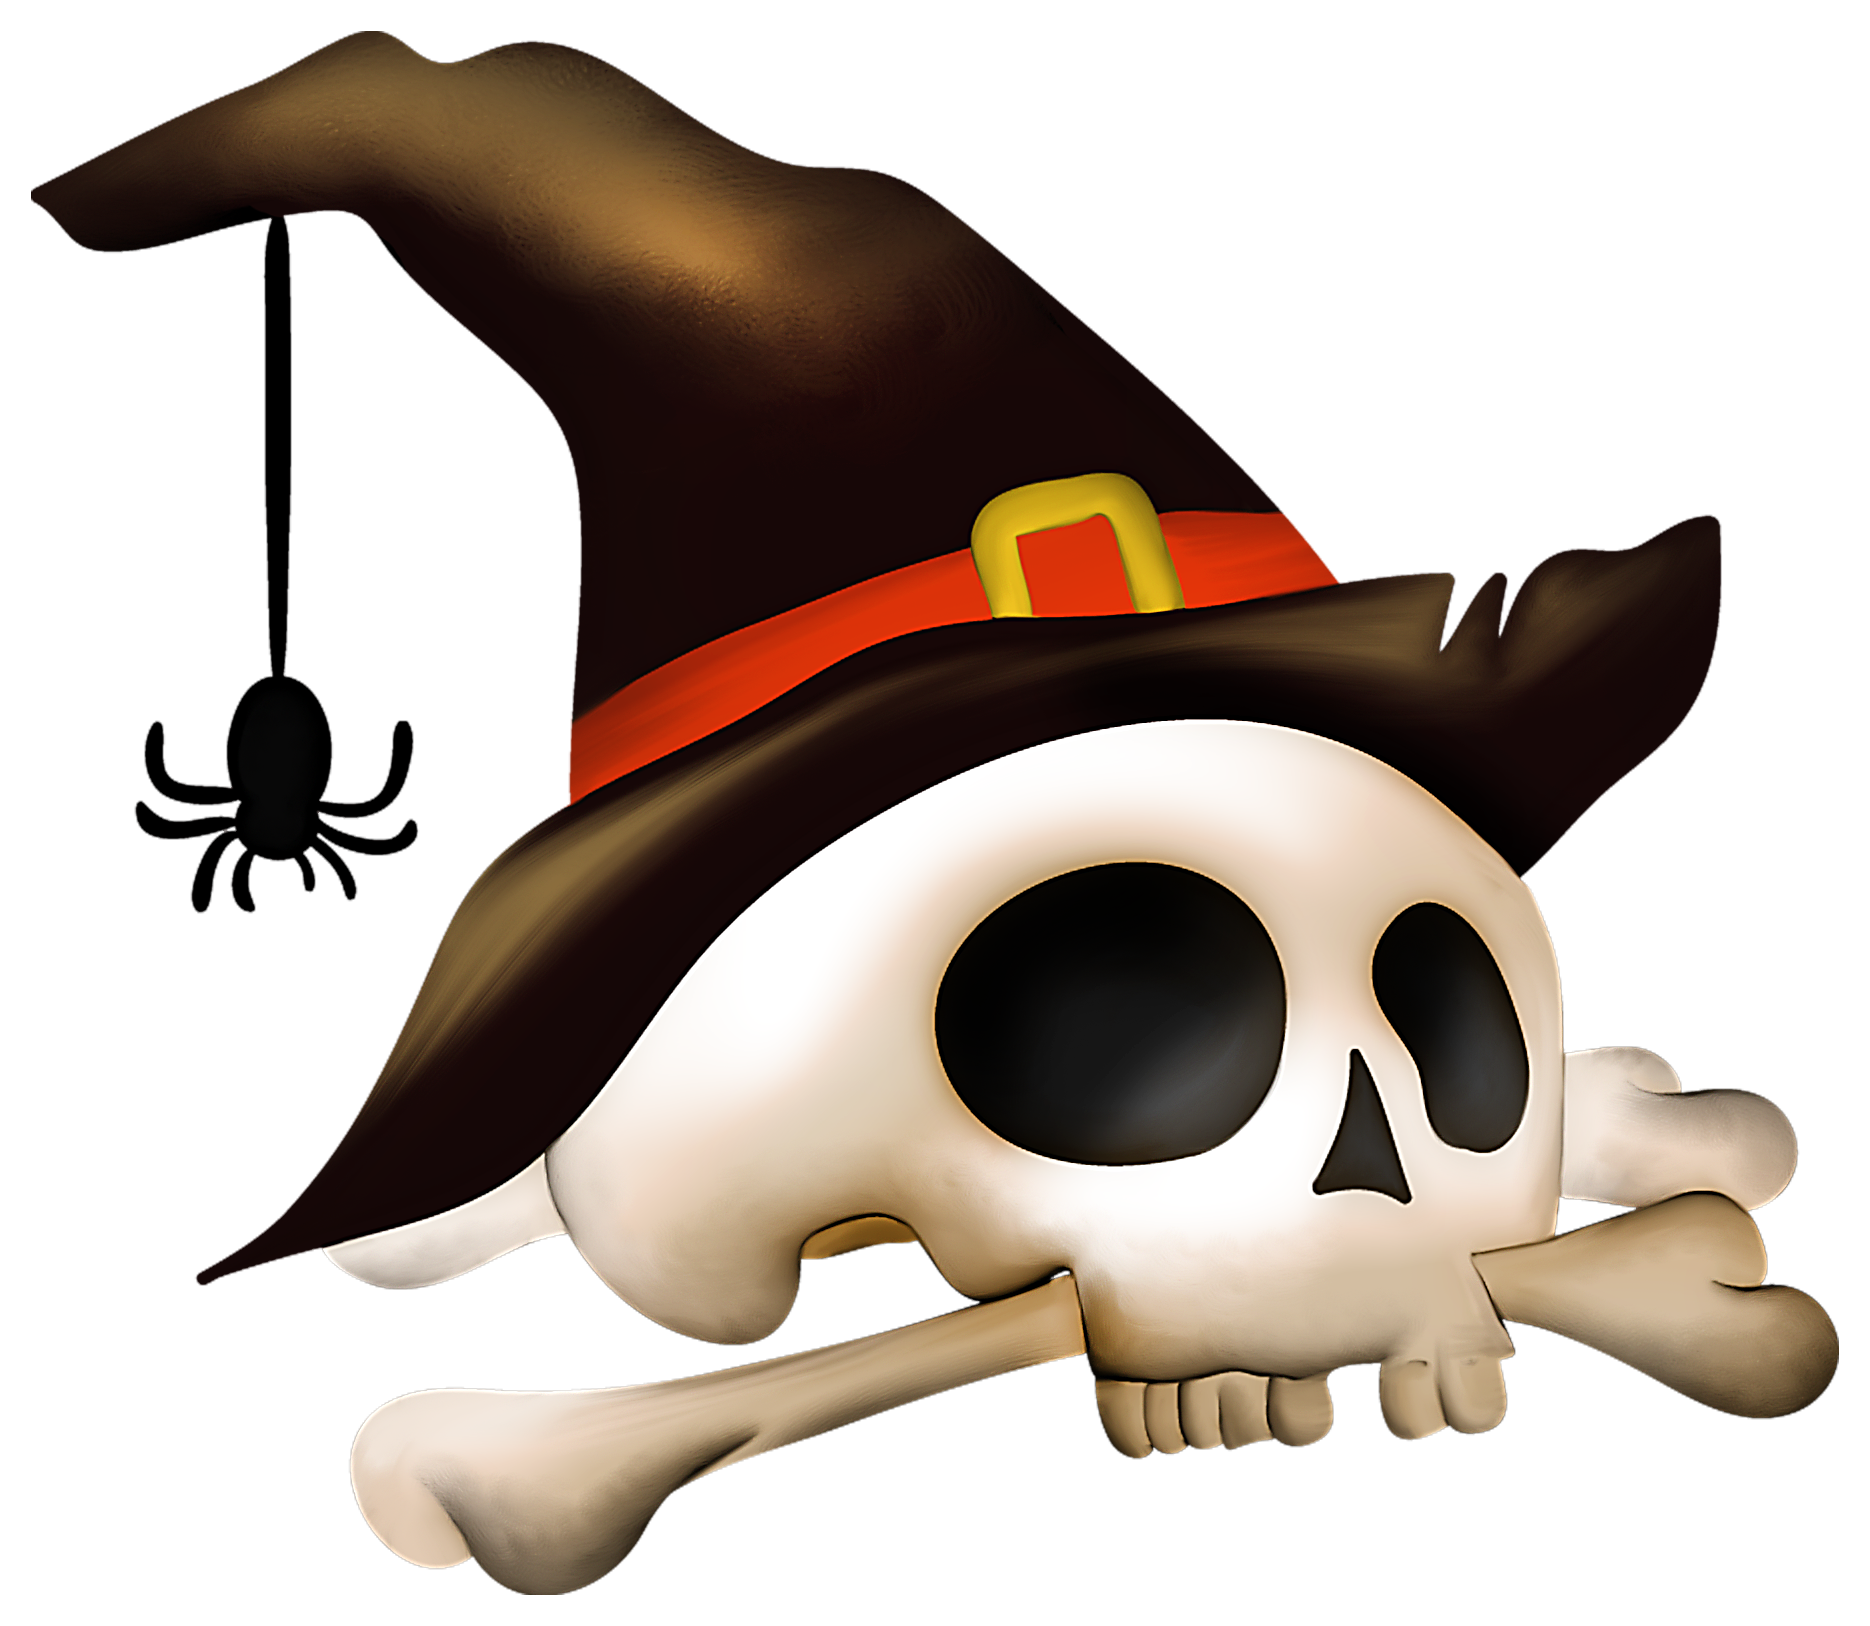 Imagenes de halloween png. Skull with bone and